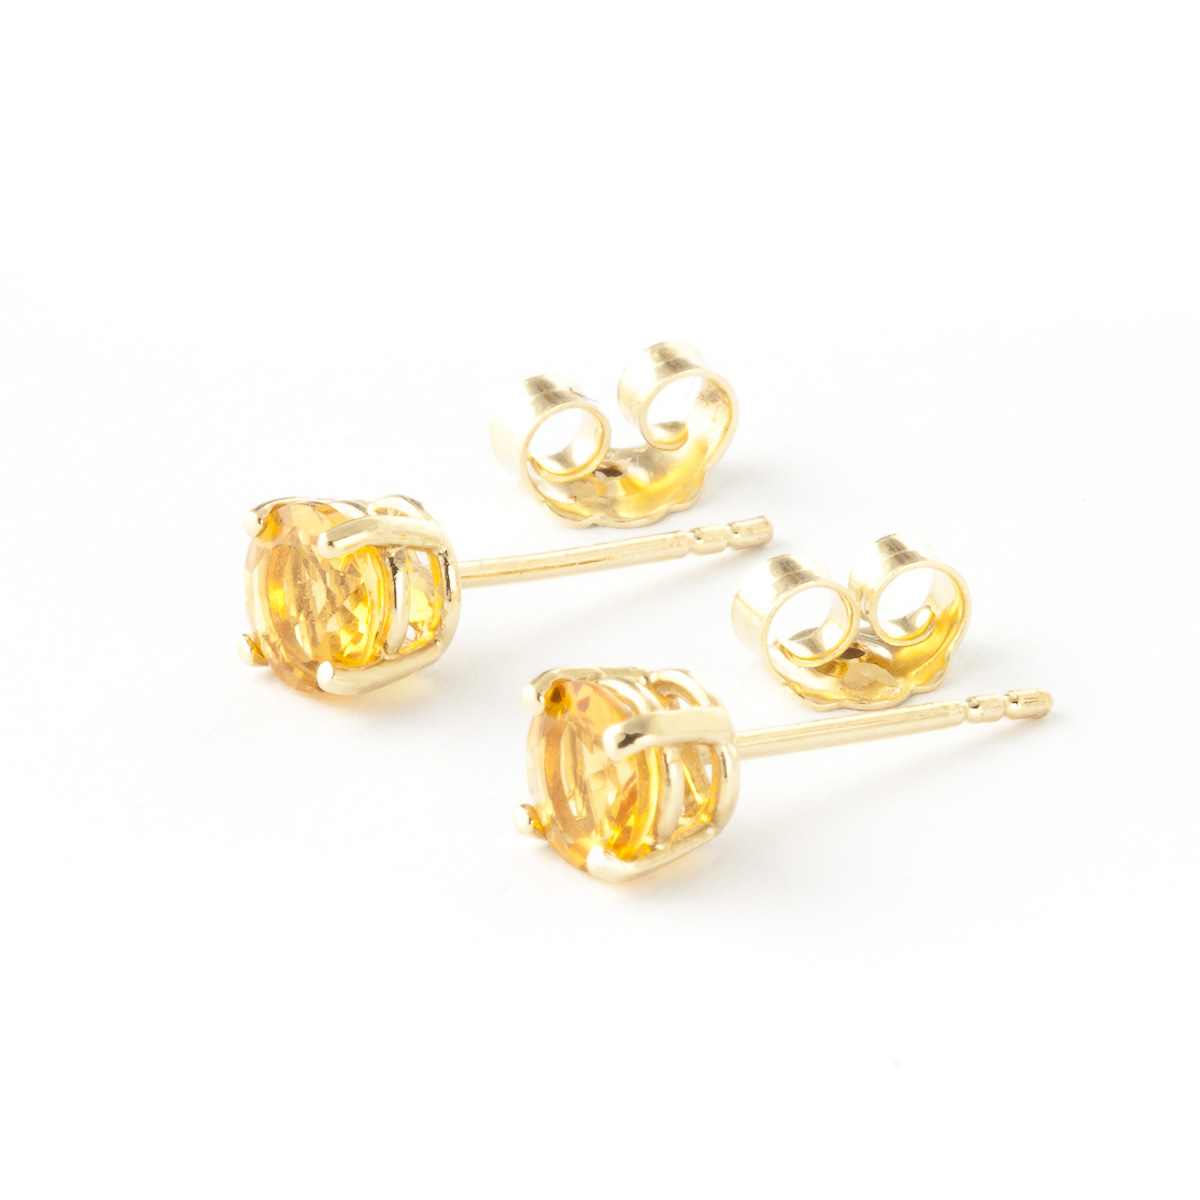 Citrine Stud Earrings 0.95 ctw in 9ct Gold